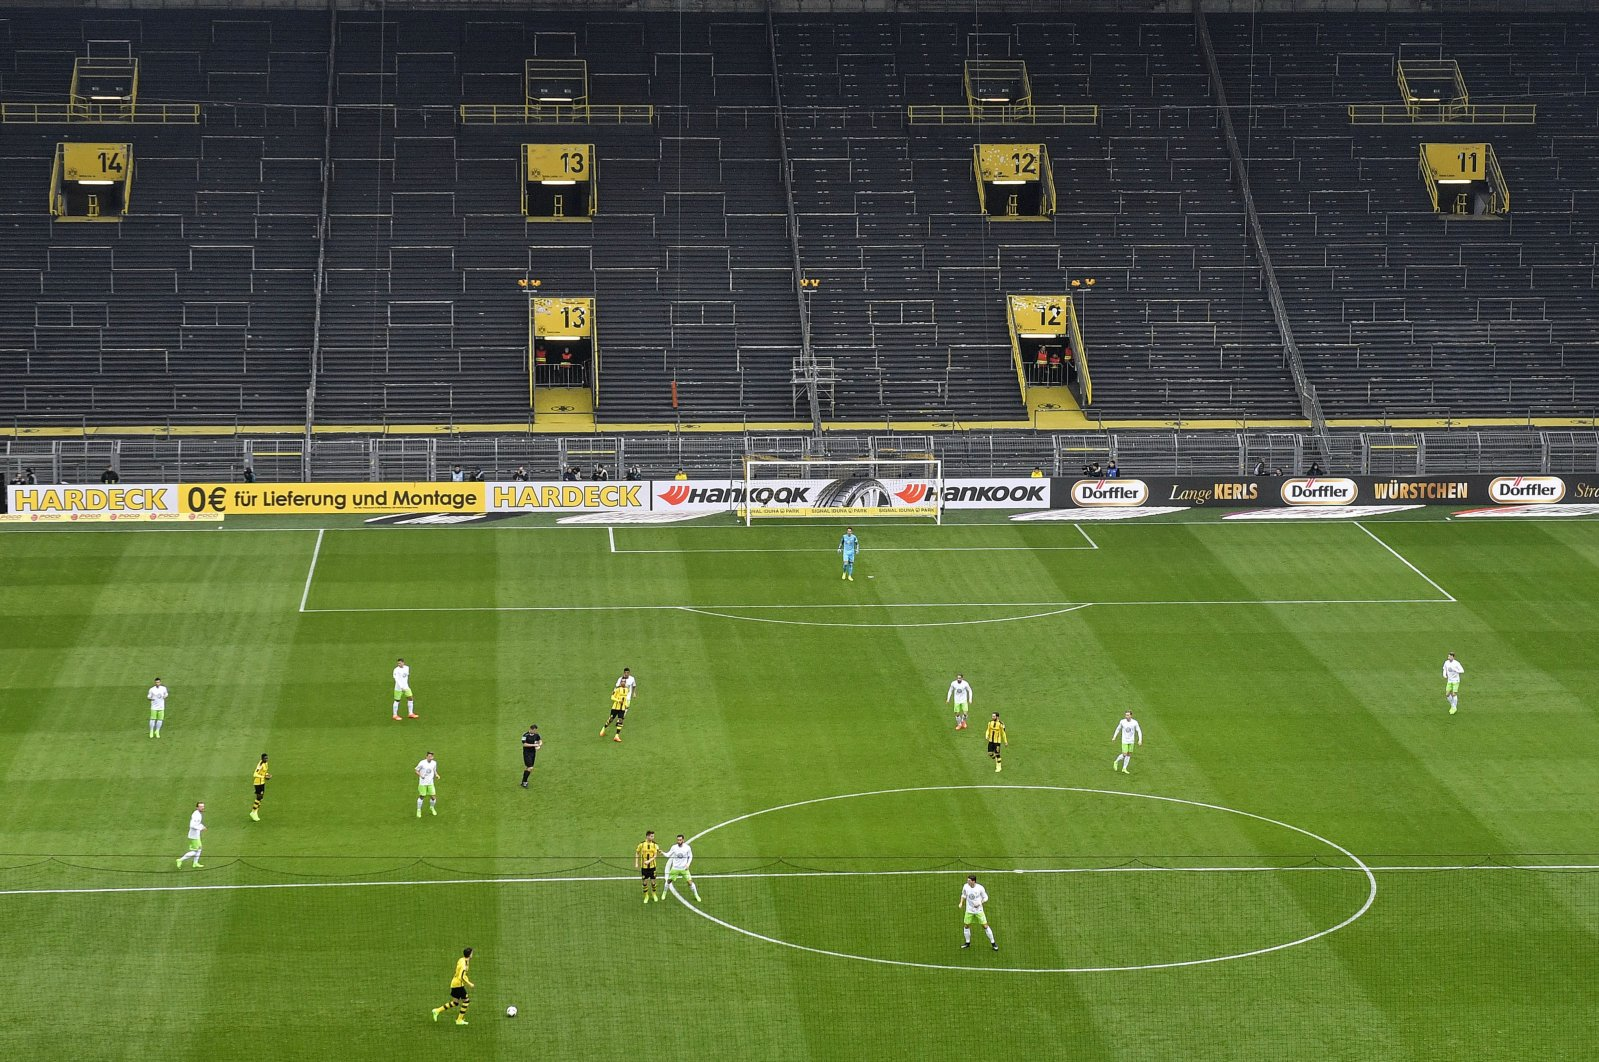 In this Feb. 18, 2017 file photo, players challenge for the ball in front of the empty south tribune because of a ban following fan trouble during the German Bundesliga football match between Borussia Dortmund and VfL Wolfsburg at Germany's biggest stadium in Dortmund, Germany. (AP Photo)